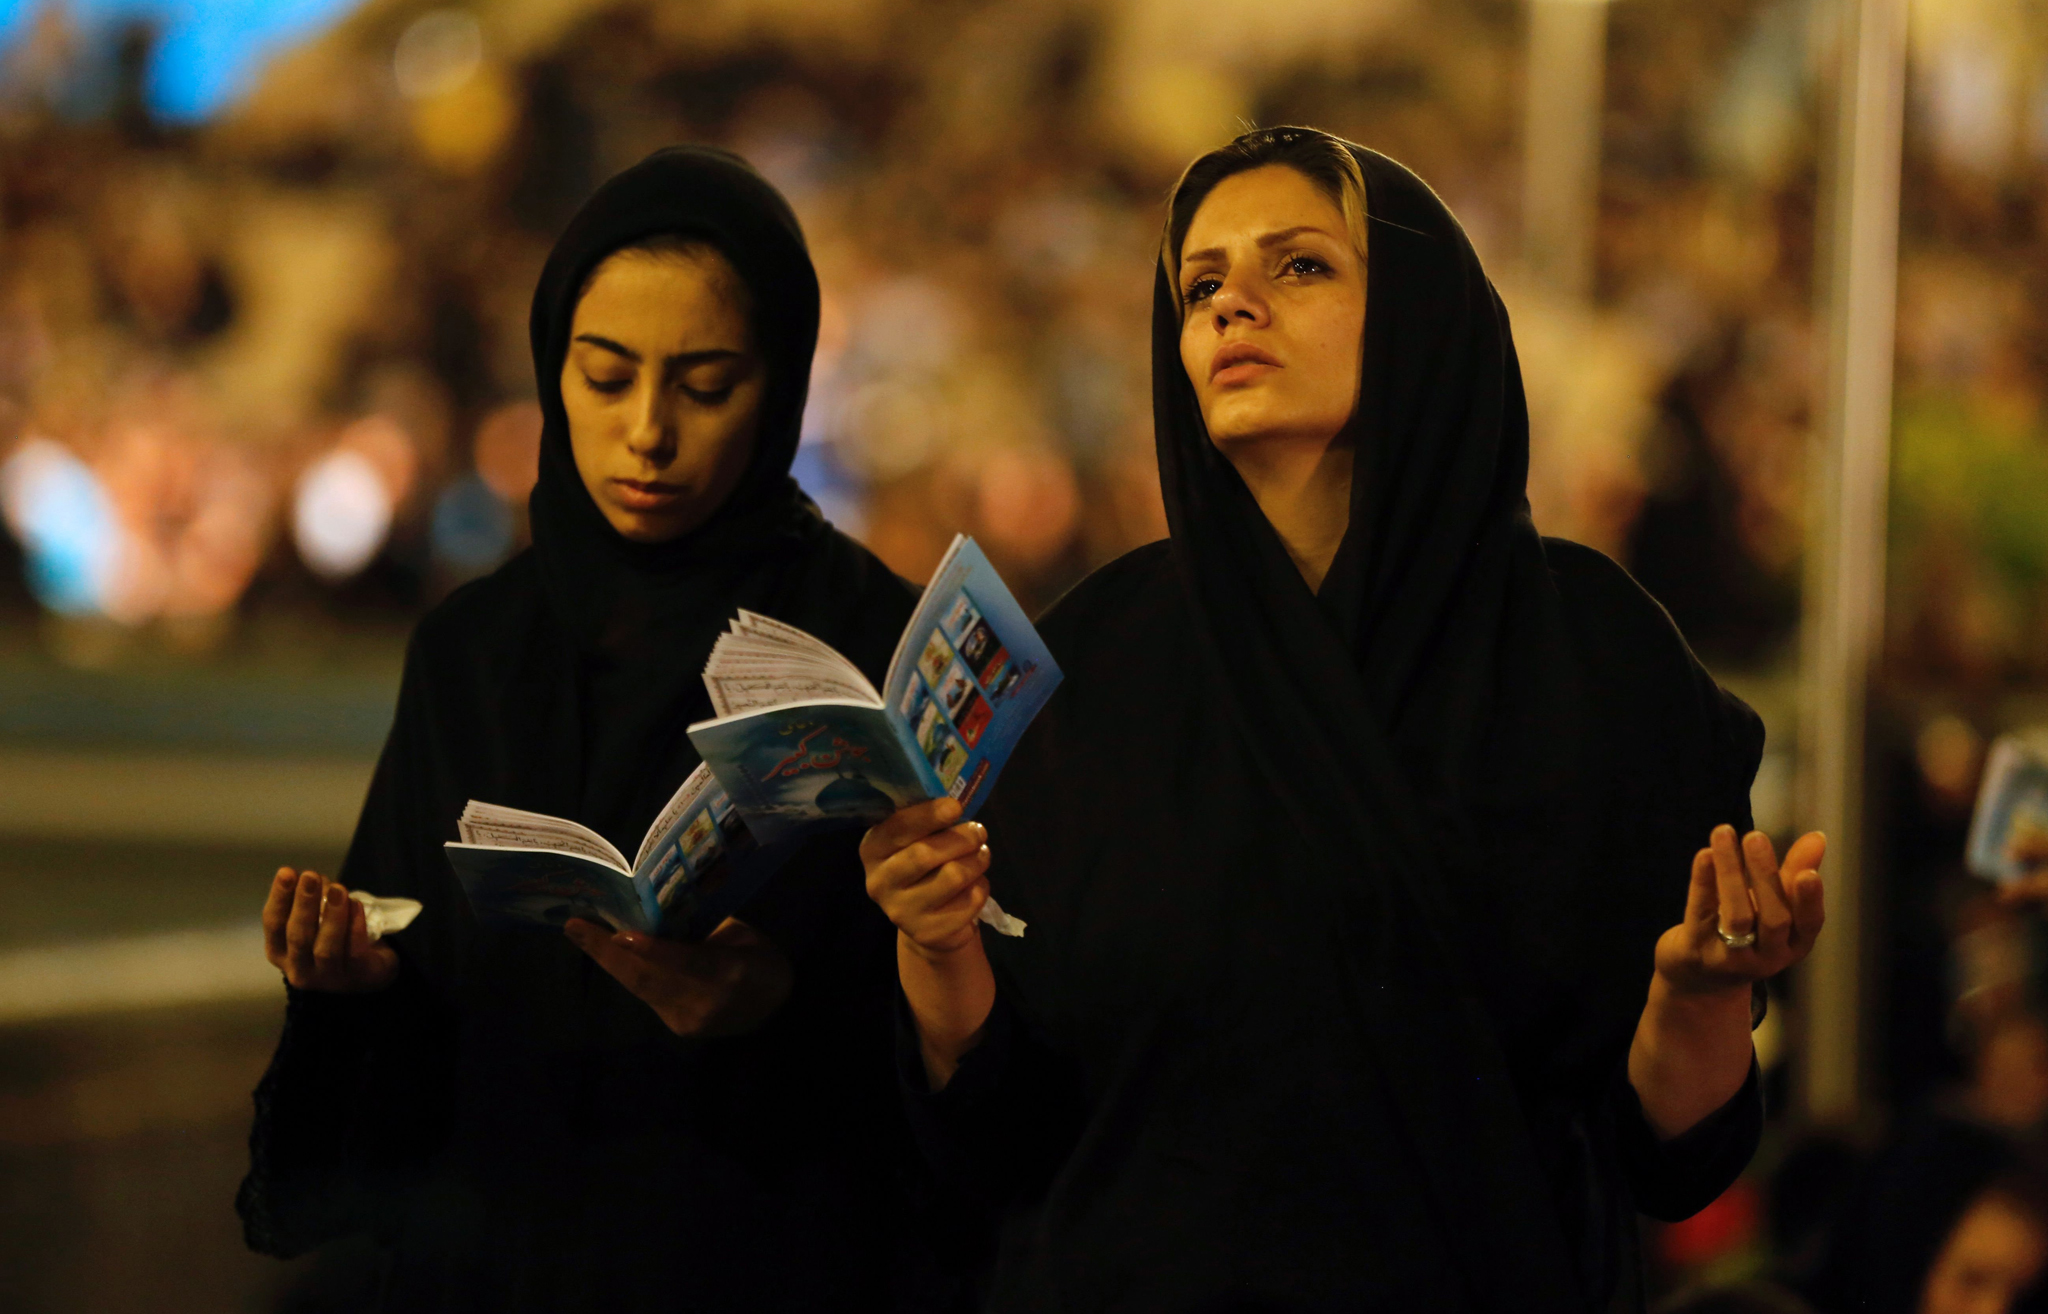 Iranian Shiite Muslim women pray at the Imam Khomeini grand mosque in the capital Tehran in the early hours of July 27, 2016 in commemoration of the death of the seventh century Imam Ali bin Abi-Taleb